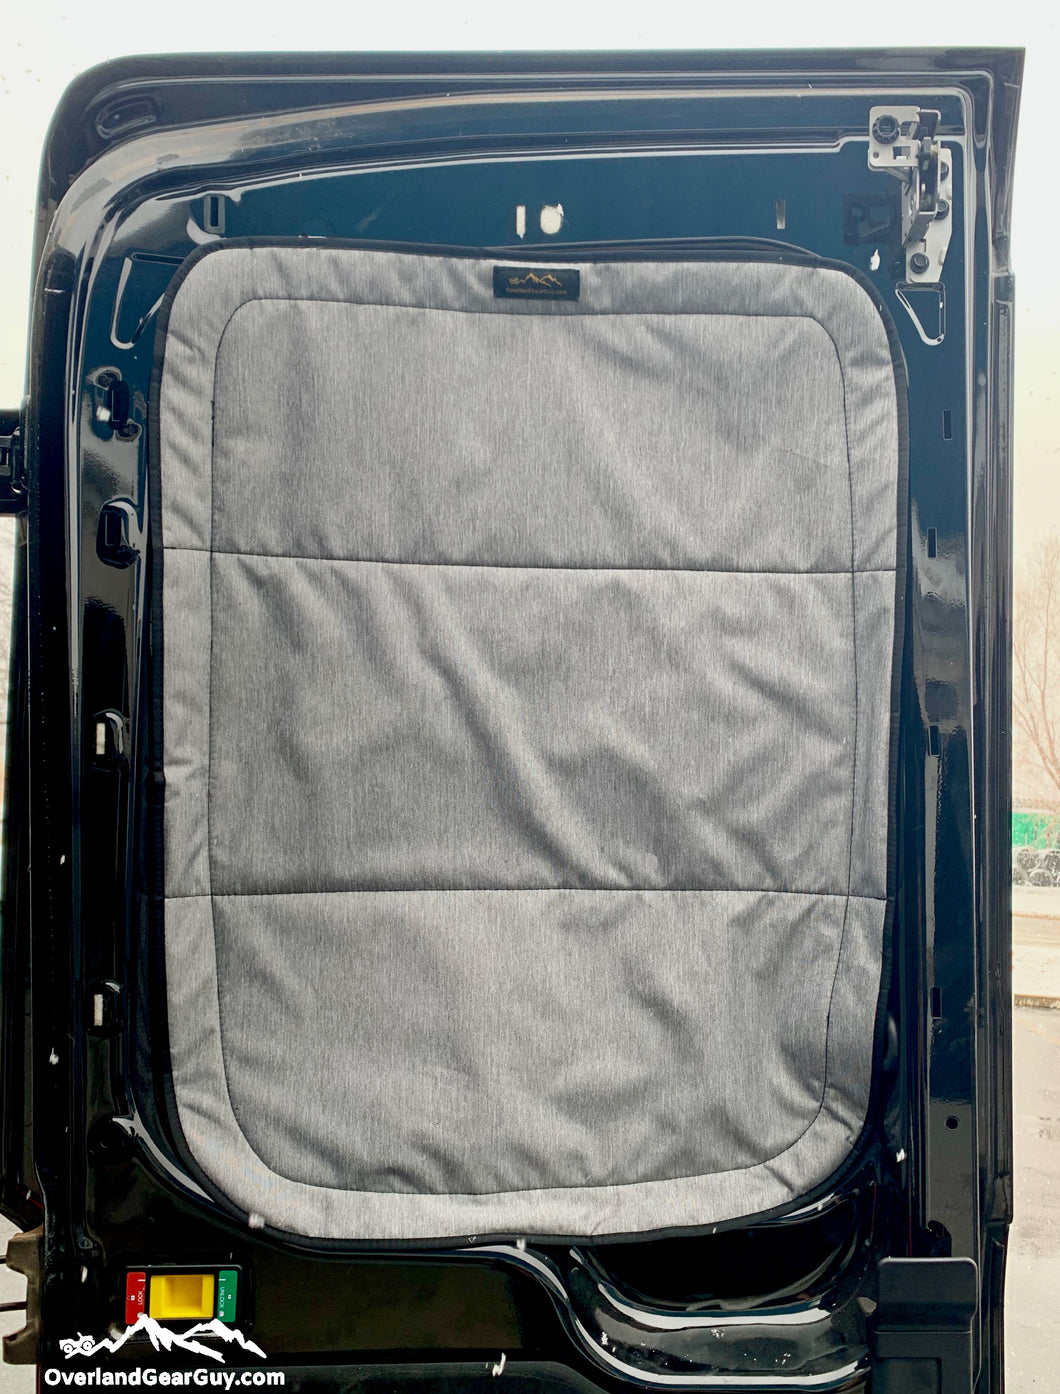 Ford Transit rear door window covers by Overland Gear Guy